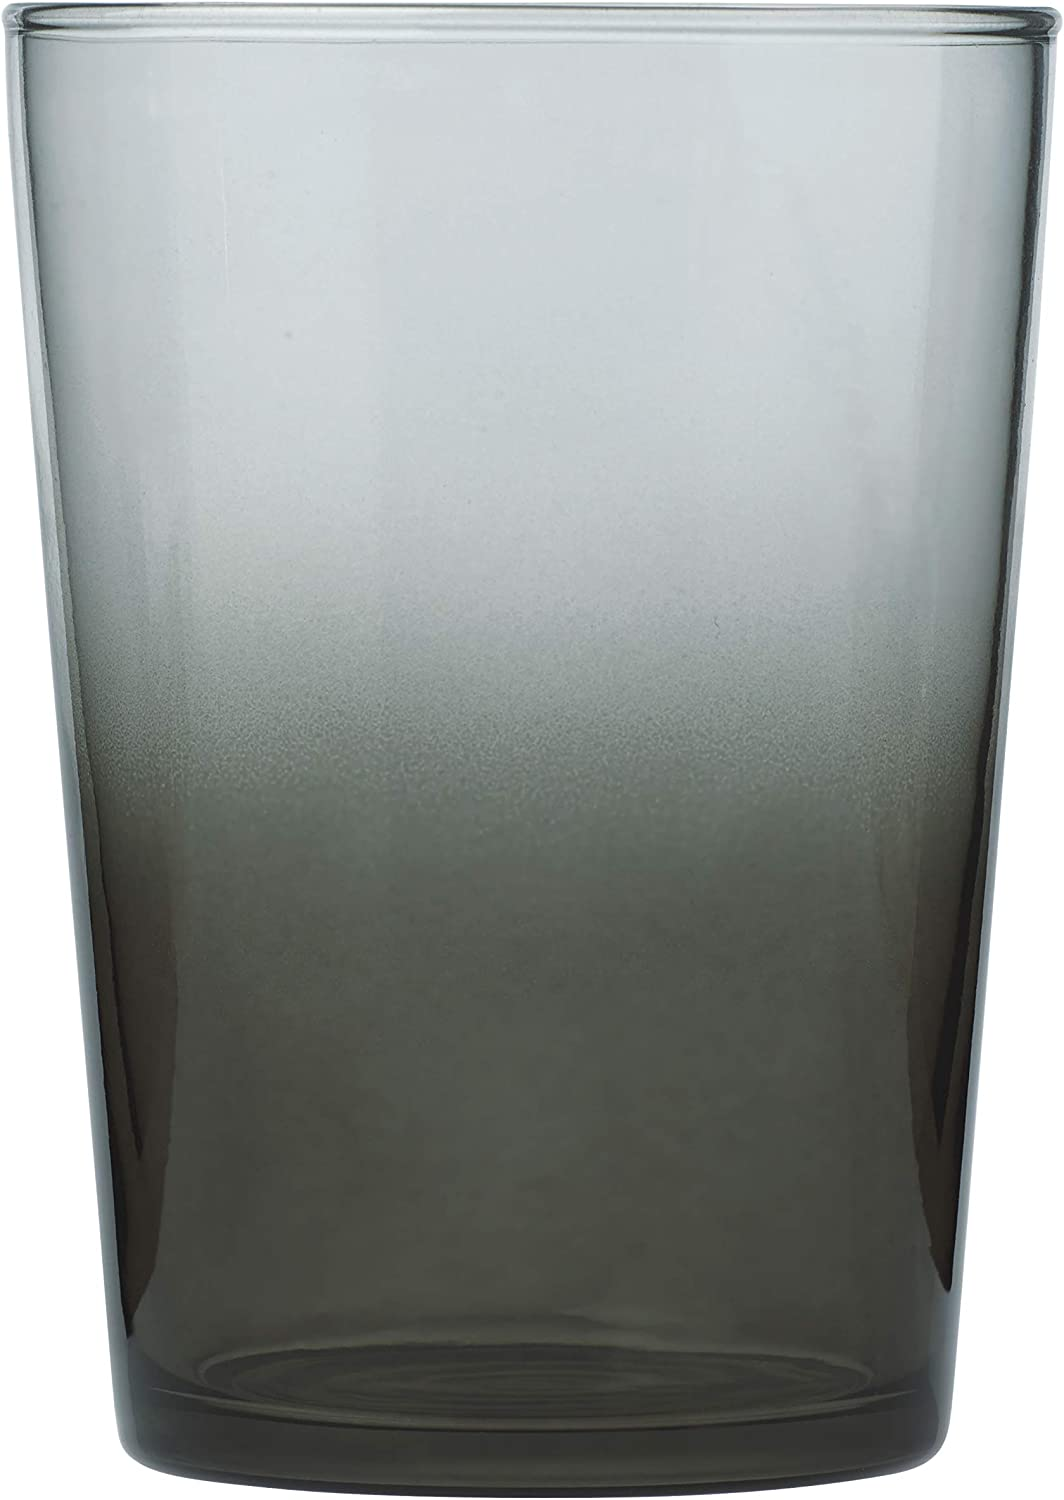 Arc Cardinal Arcoroc Essentials Fully Tempered Beverage Glass, Grey, 17-Ounce, 6-Pack